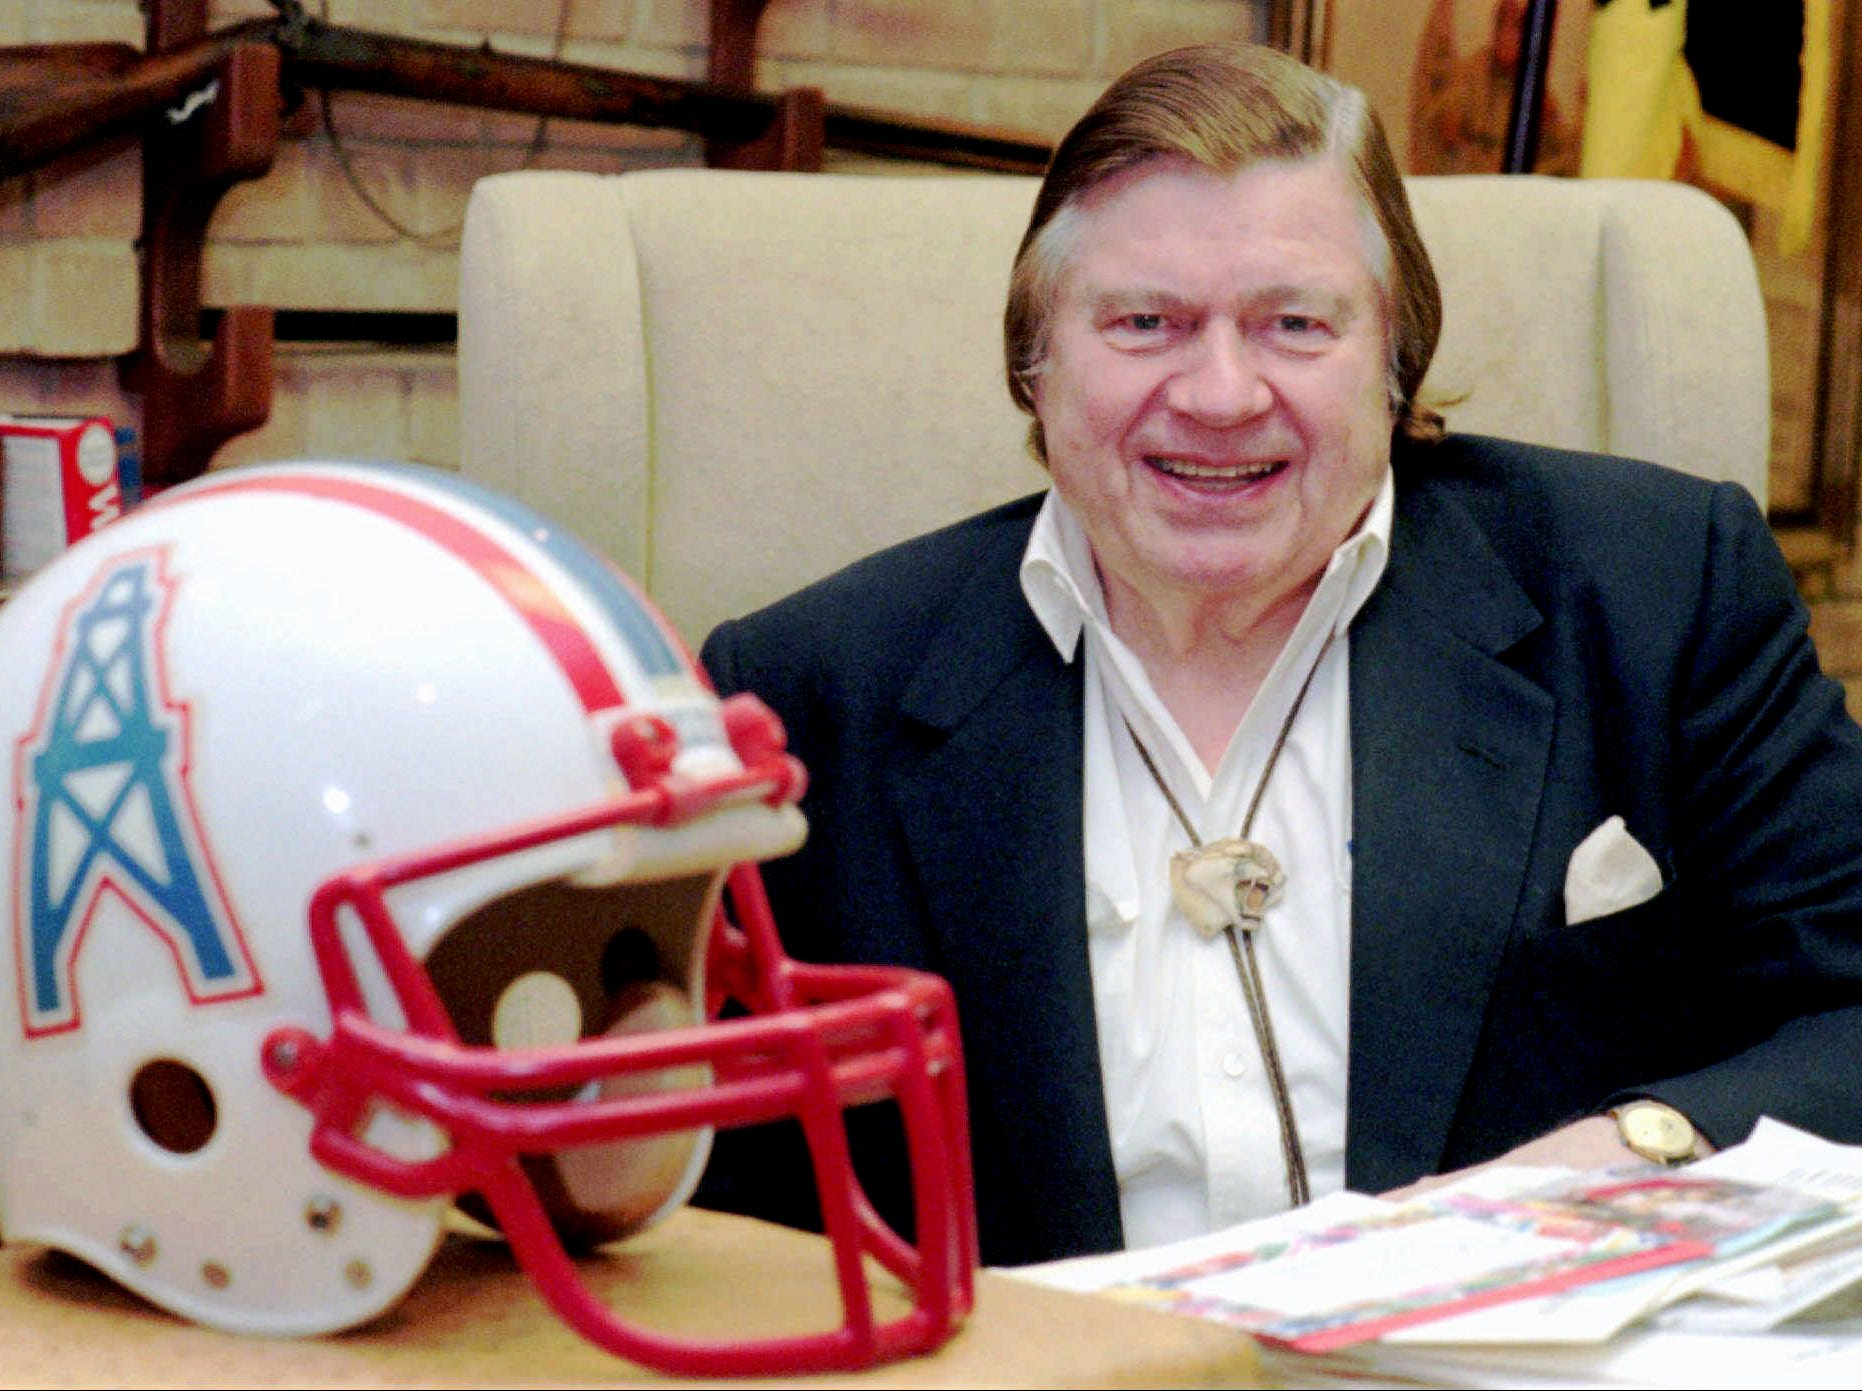 Houston Oilers owner Bud Adams sits in his office Nov. 21, 1995 in Houston. Under a judges's orders, Adams and Astrodome USA owner Drayton McLane Jr. are to meet with a mediator to try to settle a lawsuit and get Adams out of his lease a year early.